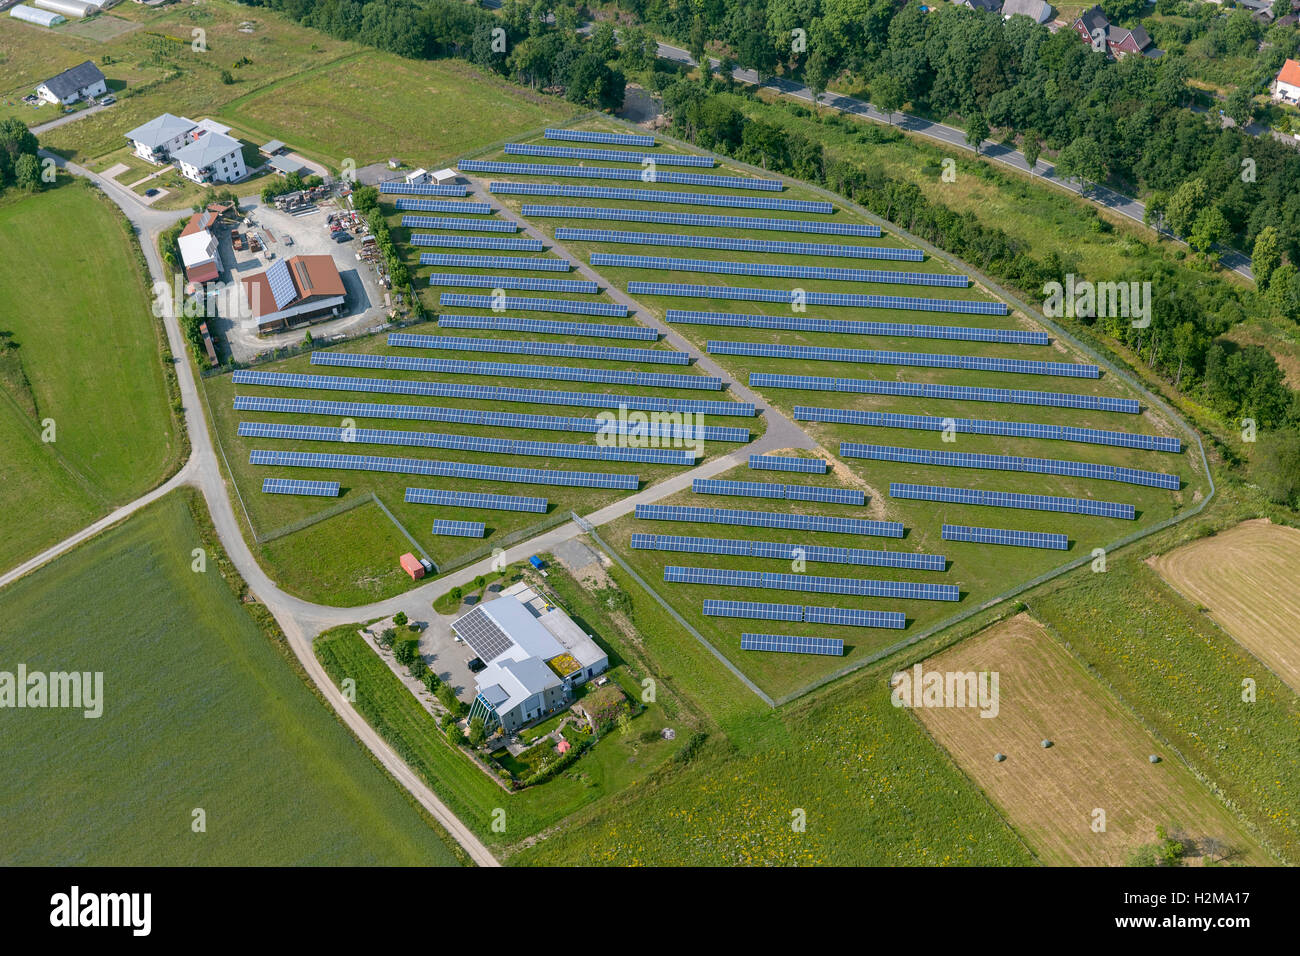 Aerial view, field with solar panels, solar panels, Bromskirchen, Hessen, Germany Europe aerial view birds-eyes - Stock Image